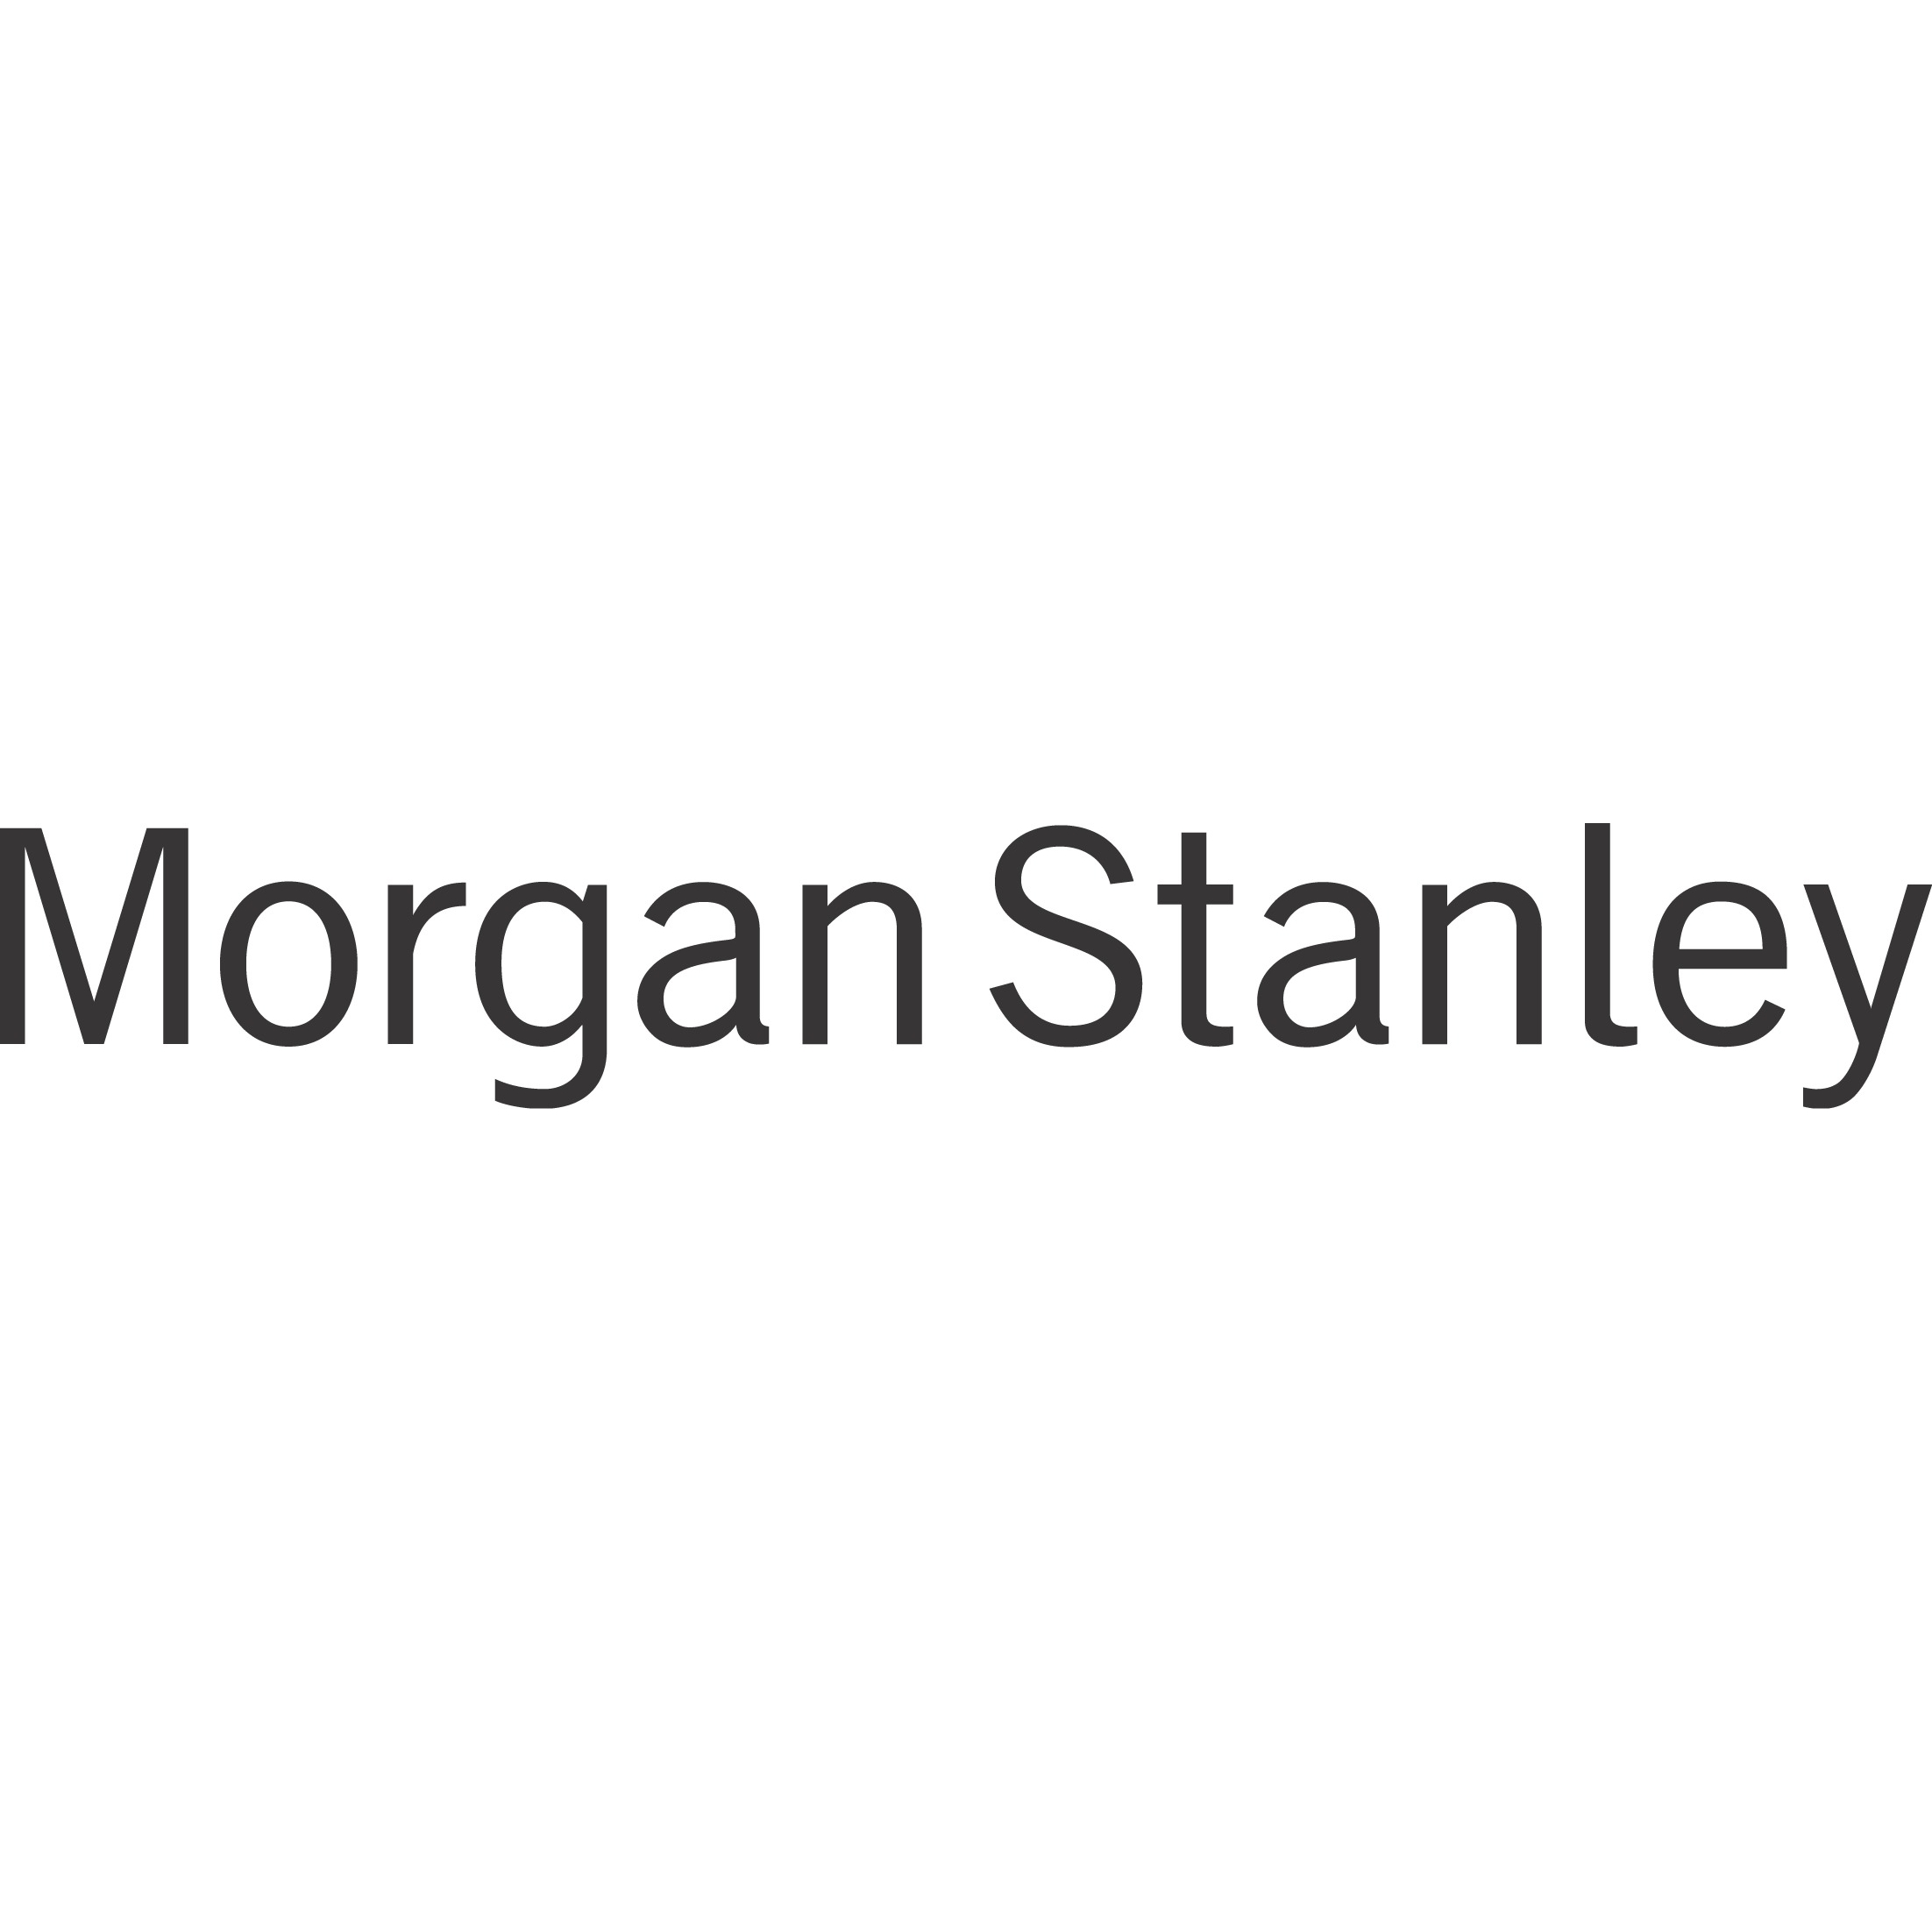 Jared Kohlenberg - Morgan Stanley